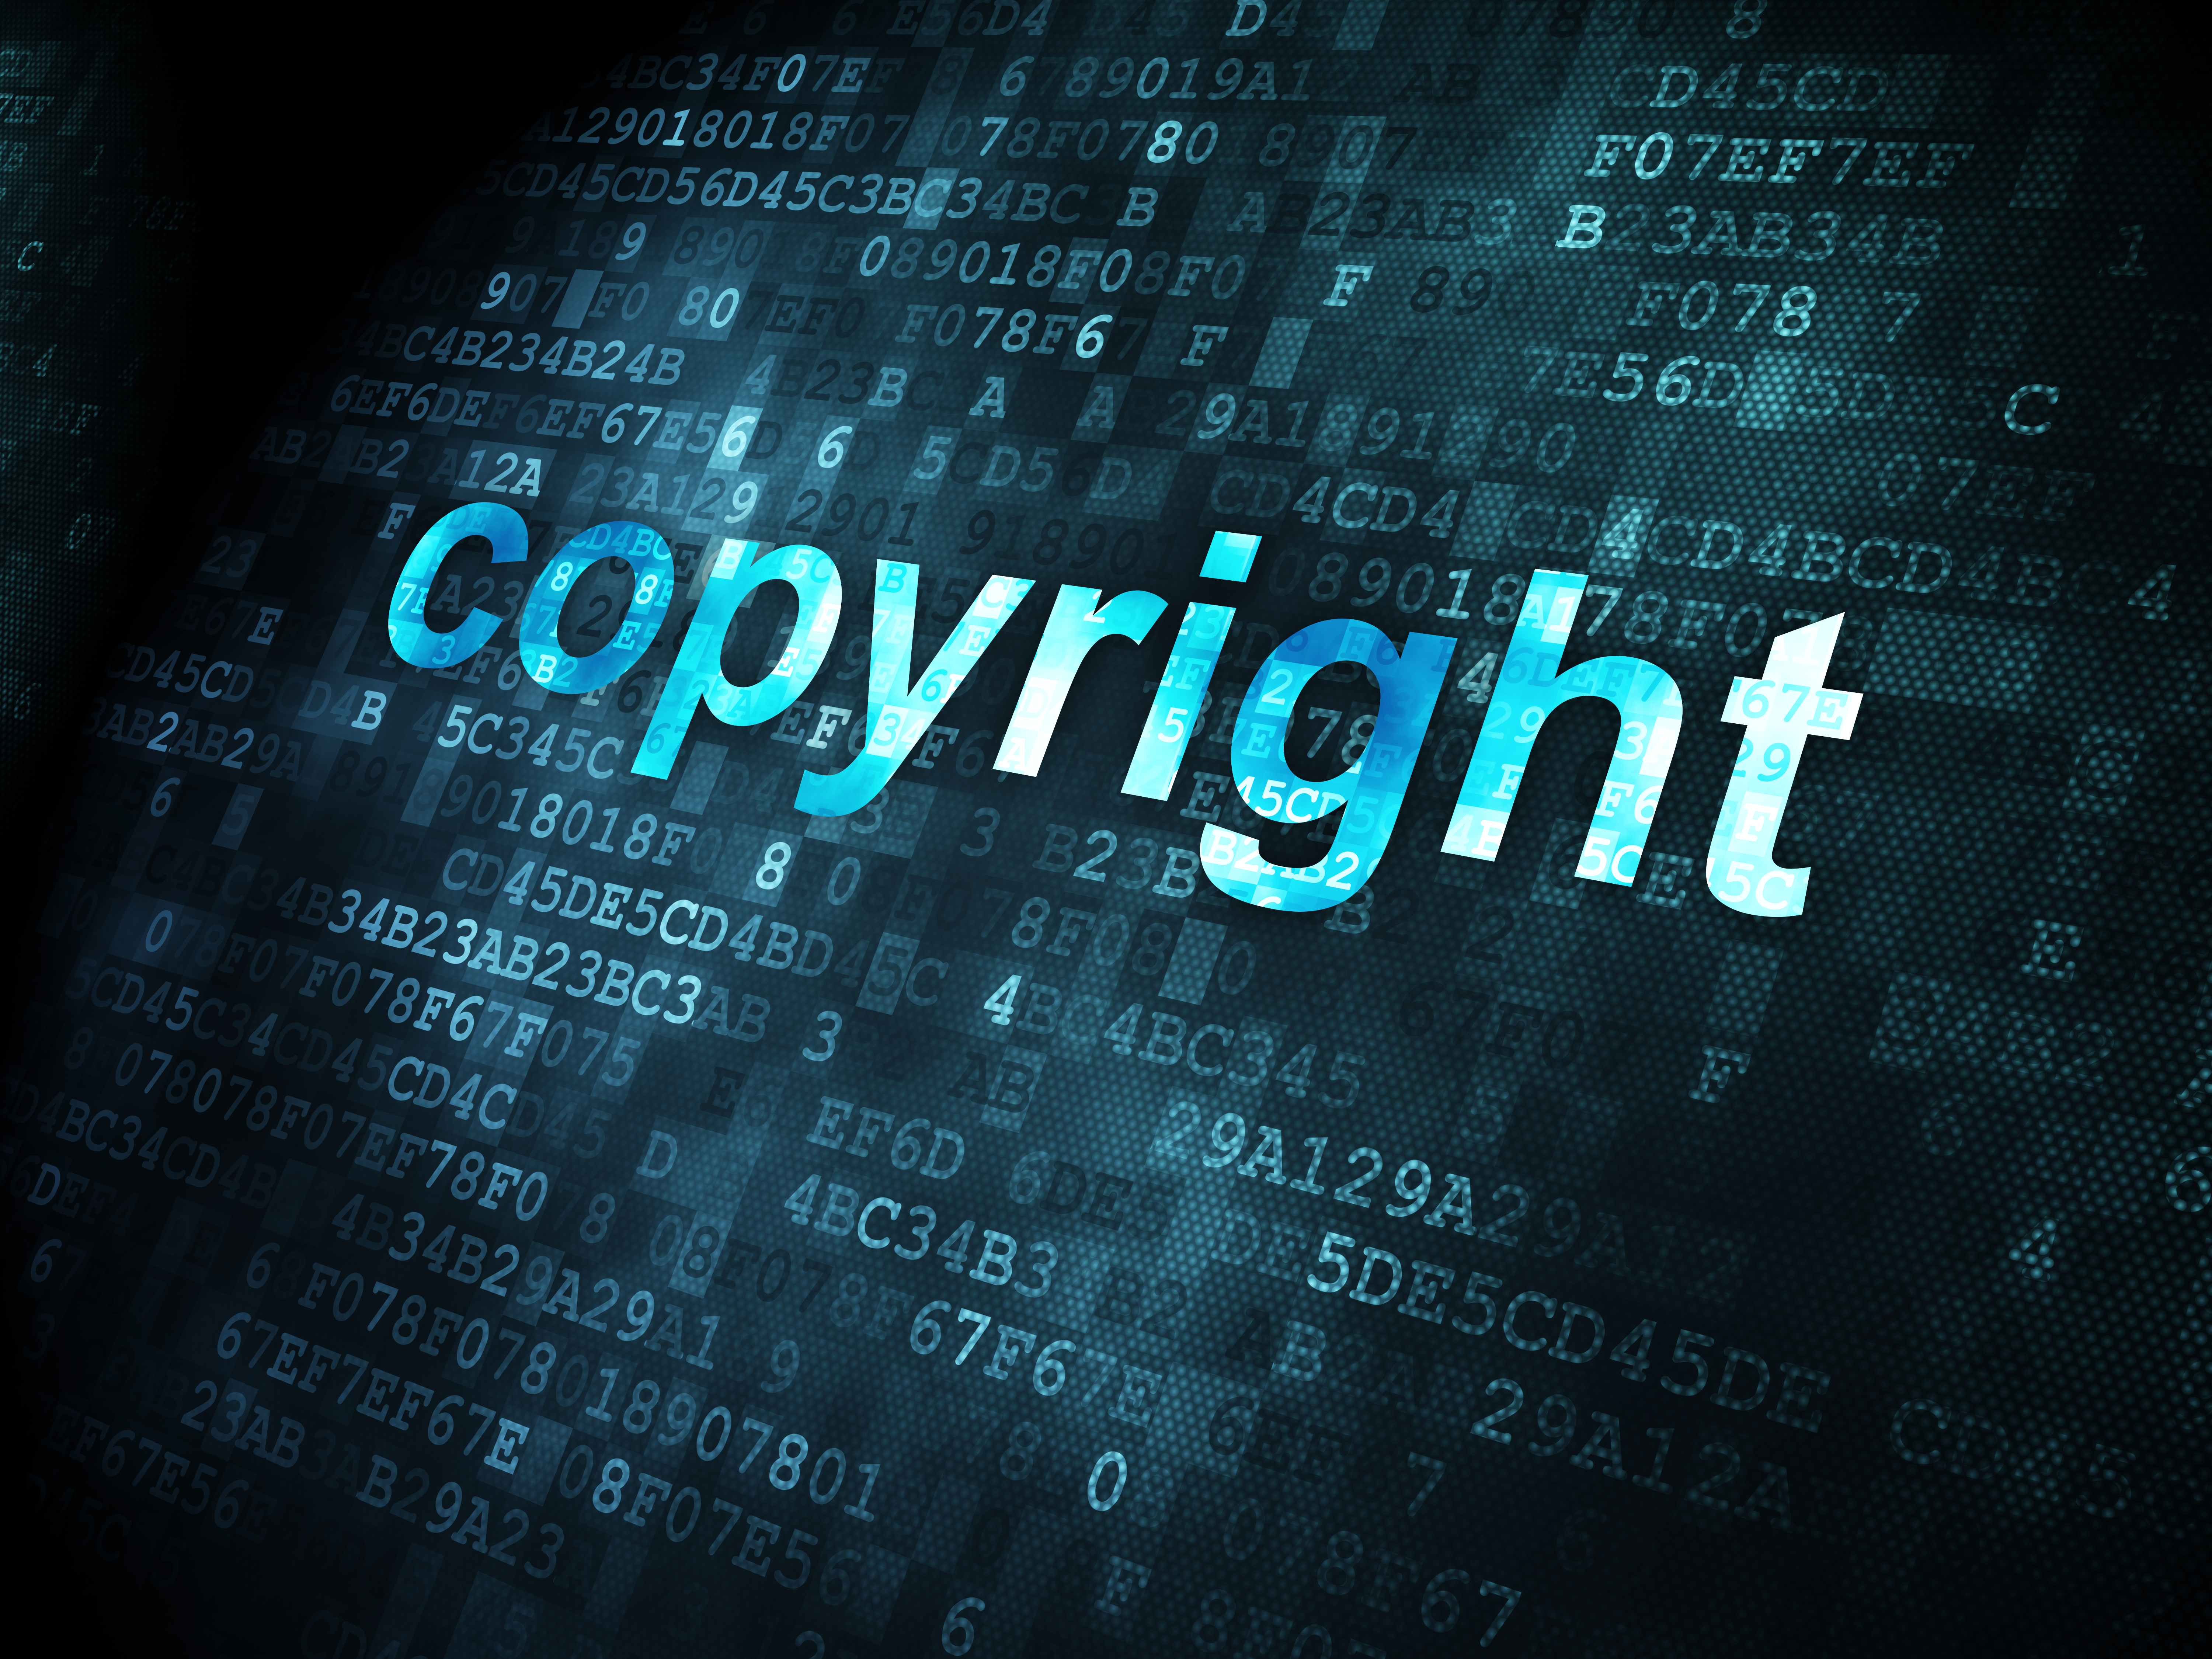 Saberi Law Copyright image